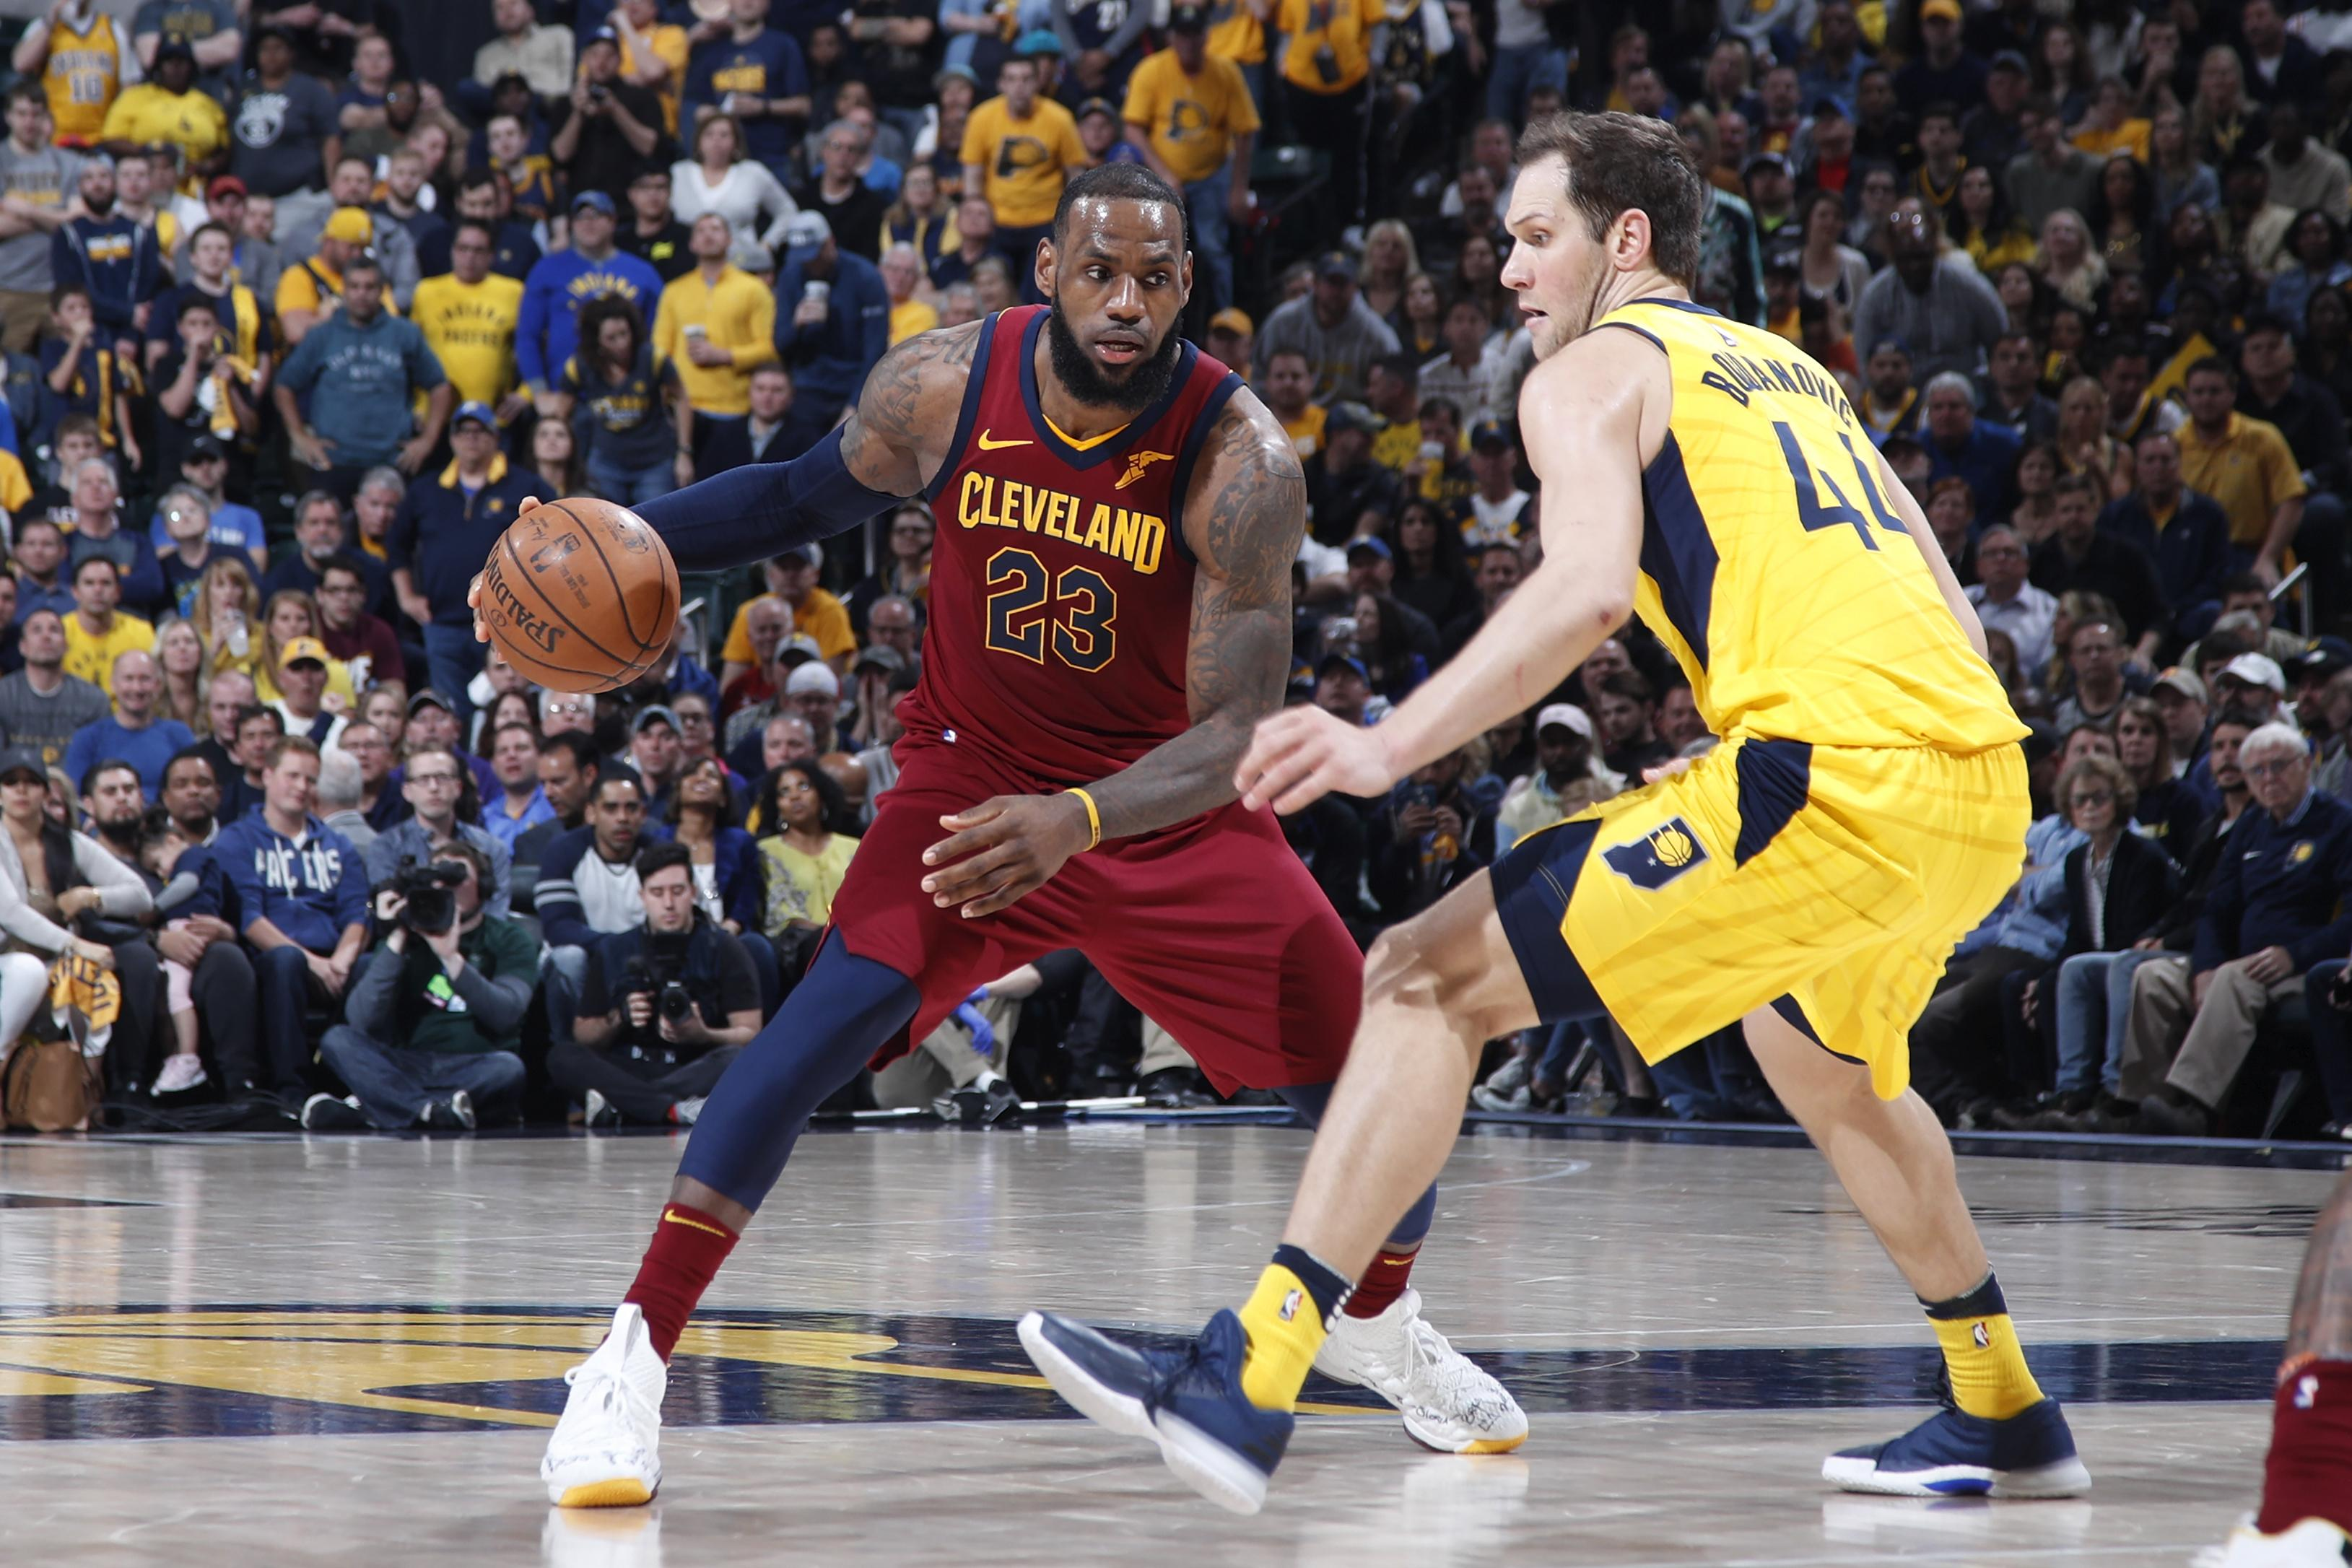 LeBron scores 45 as Cavs advance in NBA playoffs